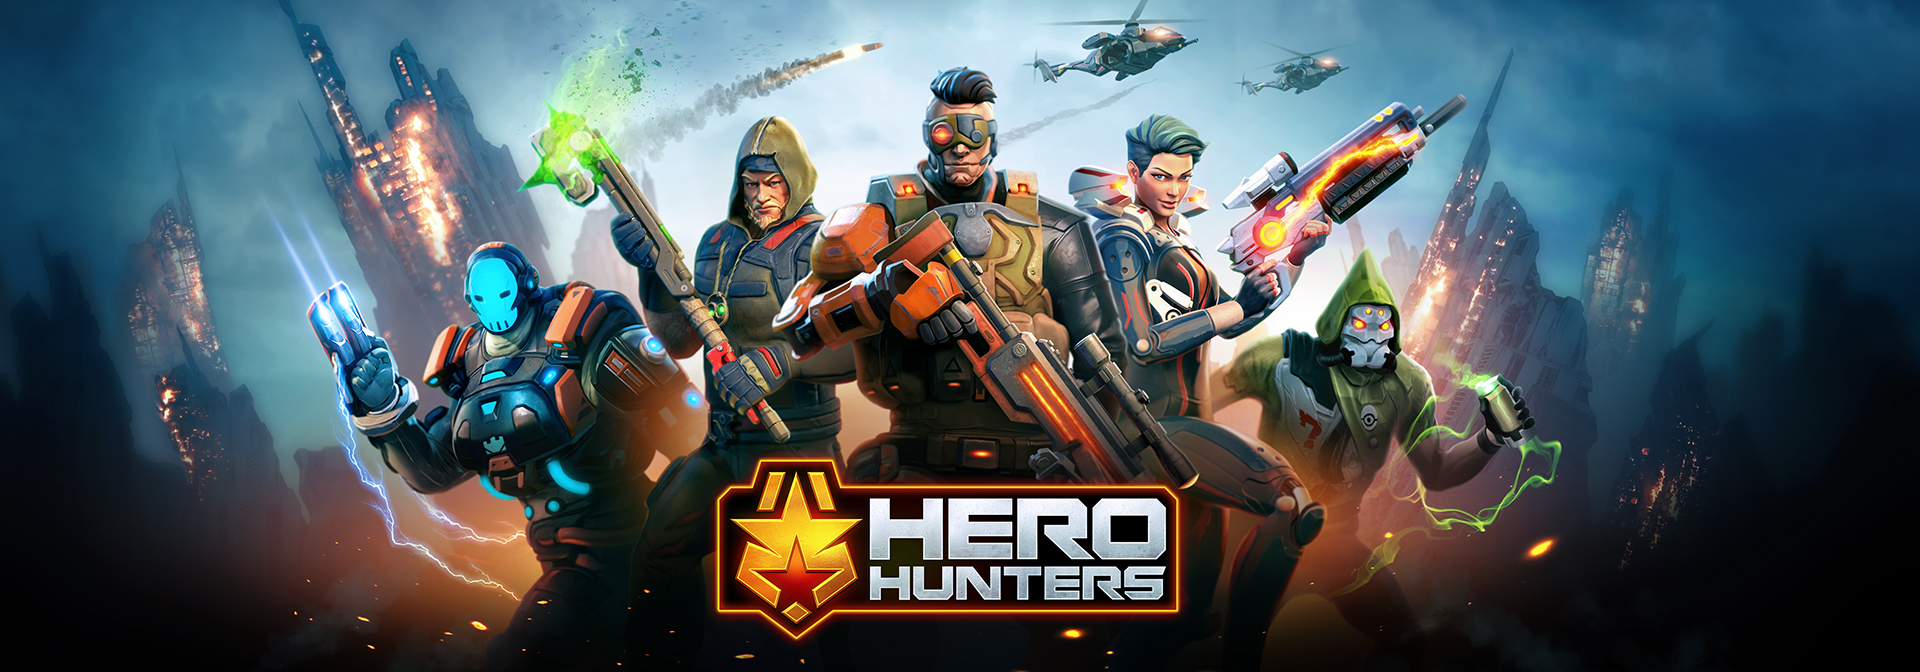 Hothead Games Hero Hunters promotional image